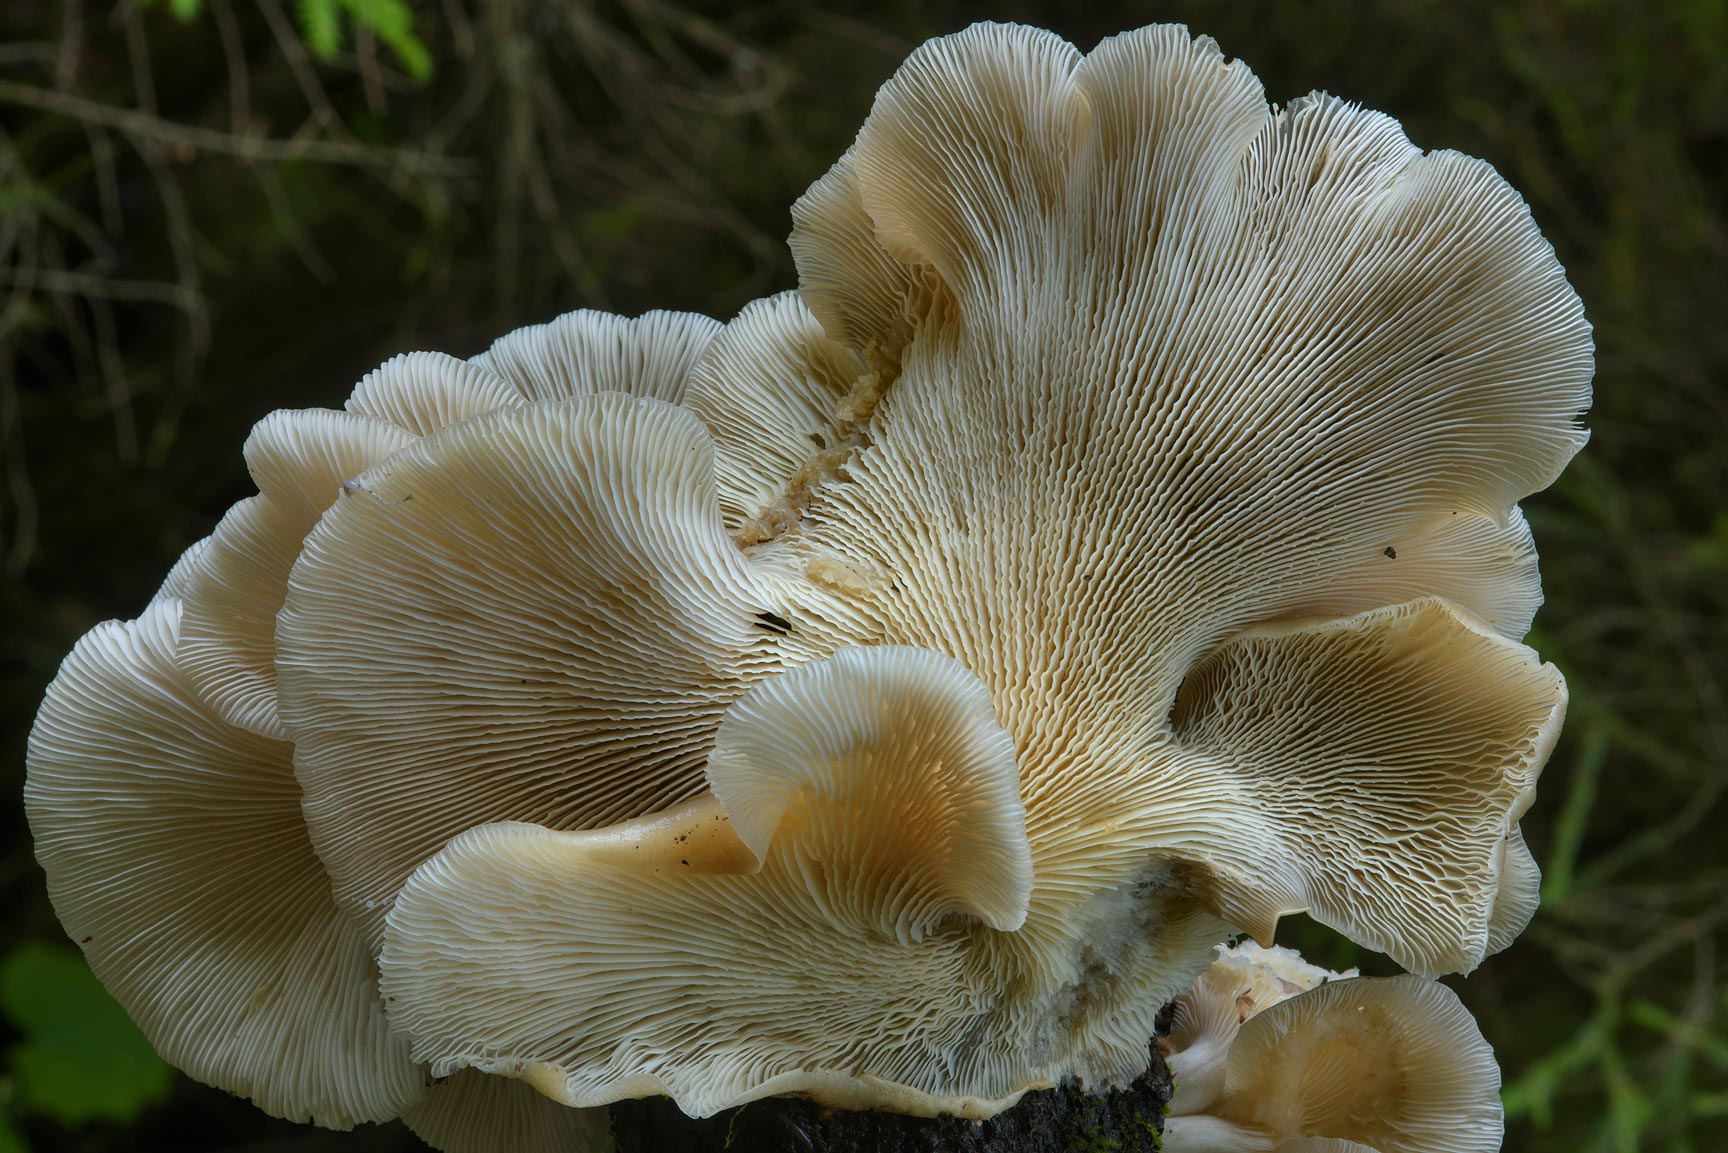 Gills of a large oyster mushroom (Pleurotus...north from St.Petersburg. Russia